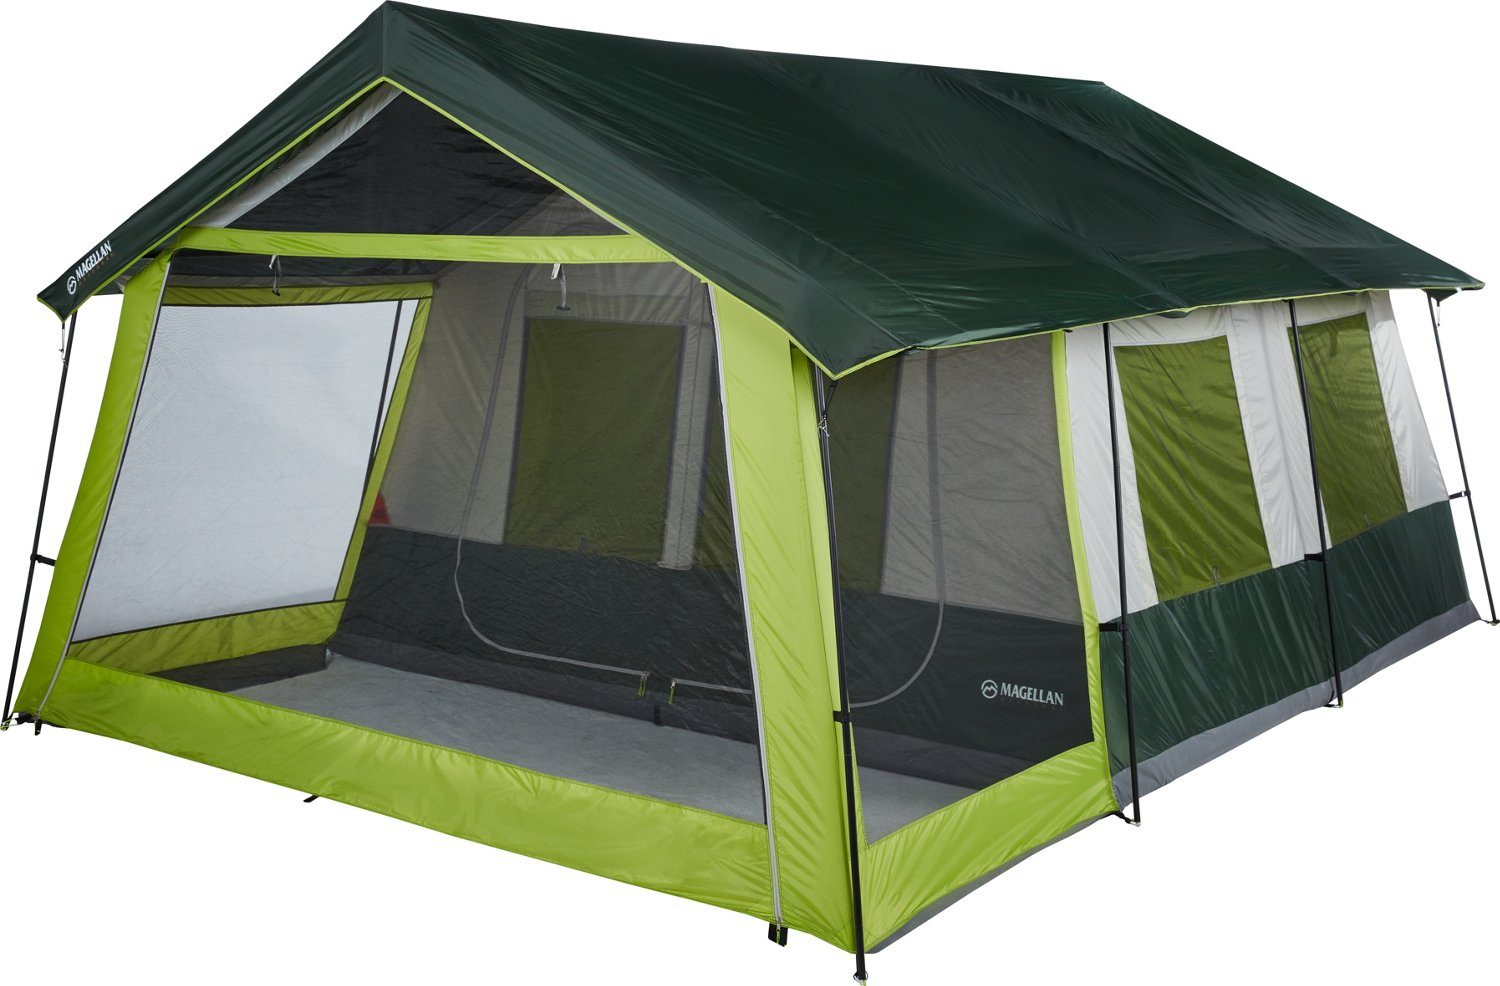 be3db371e8c Display product reviews for Magellan Outdoors Lakewood Lodge 10-Person  Cabin Tent